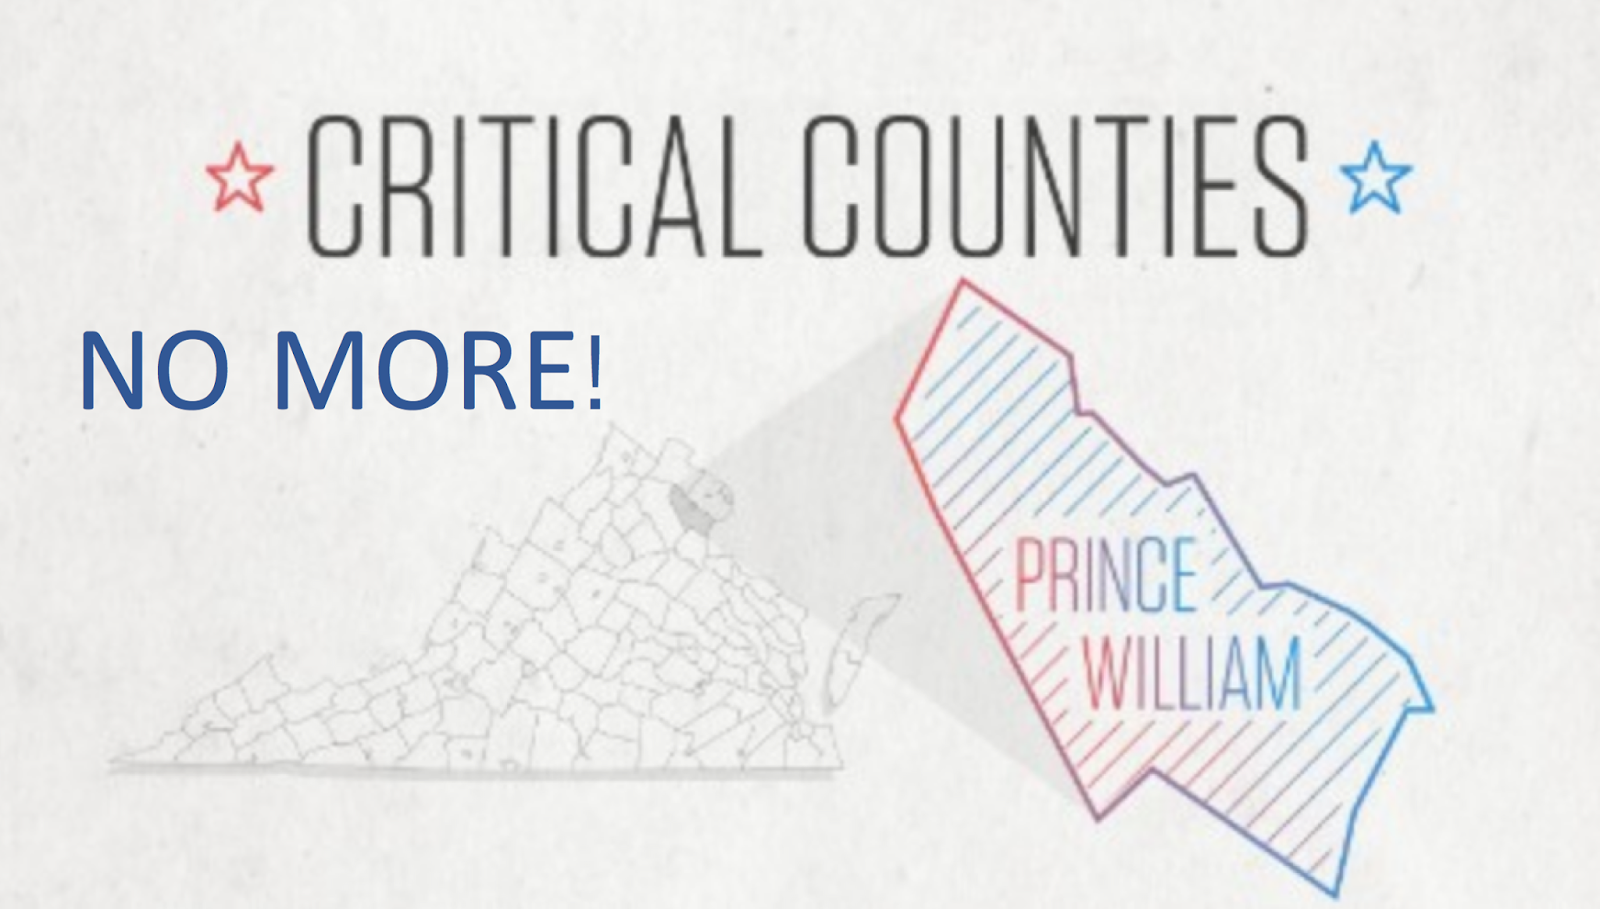 a bellwether county is one that reliably predicts the outcomes of presidential elections and it is viewed as an area that mirrors the national population